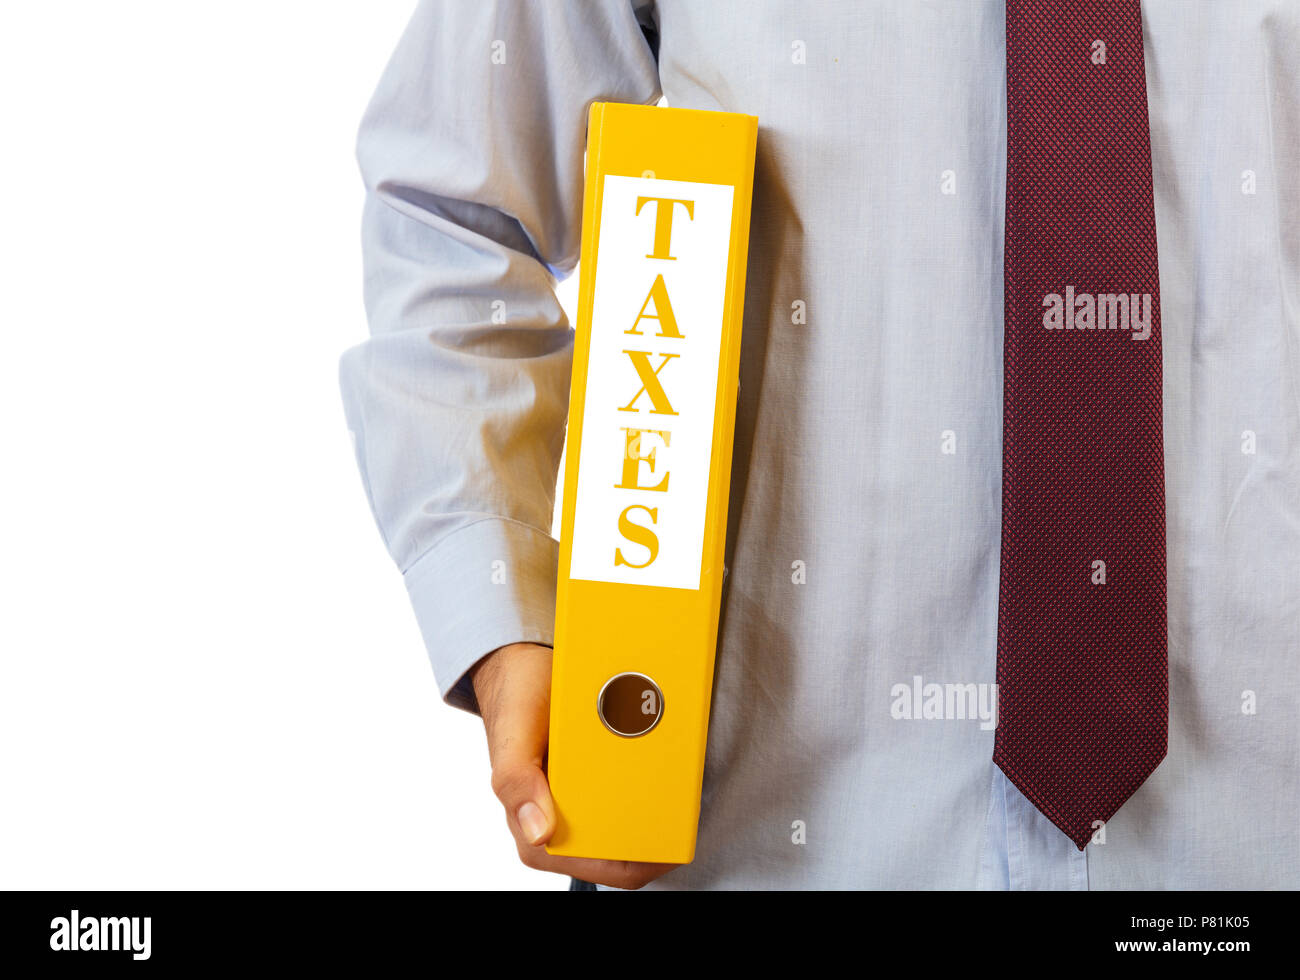 Business taxation. Manager holding a binder folder on white background, text taxes, clipping path - Stock Image